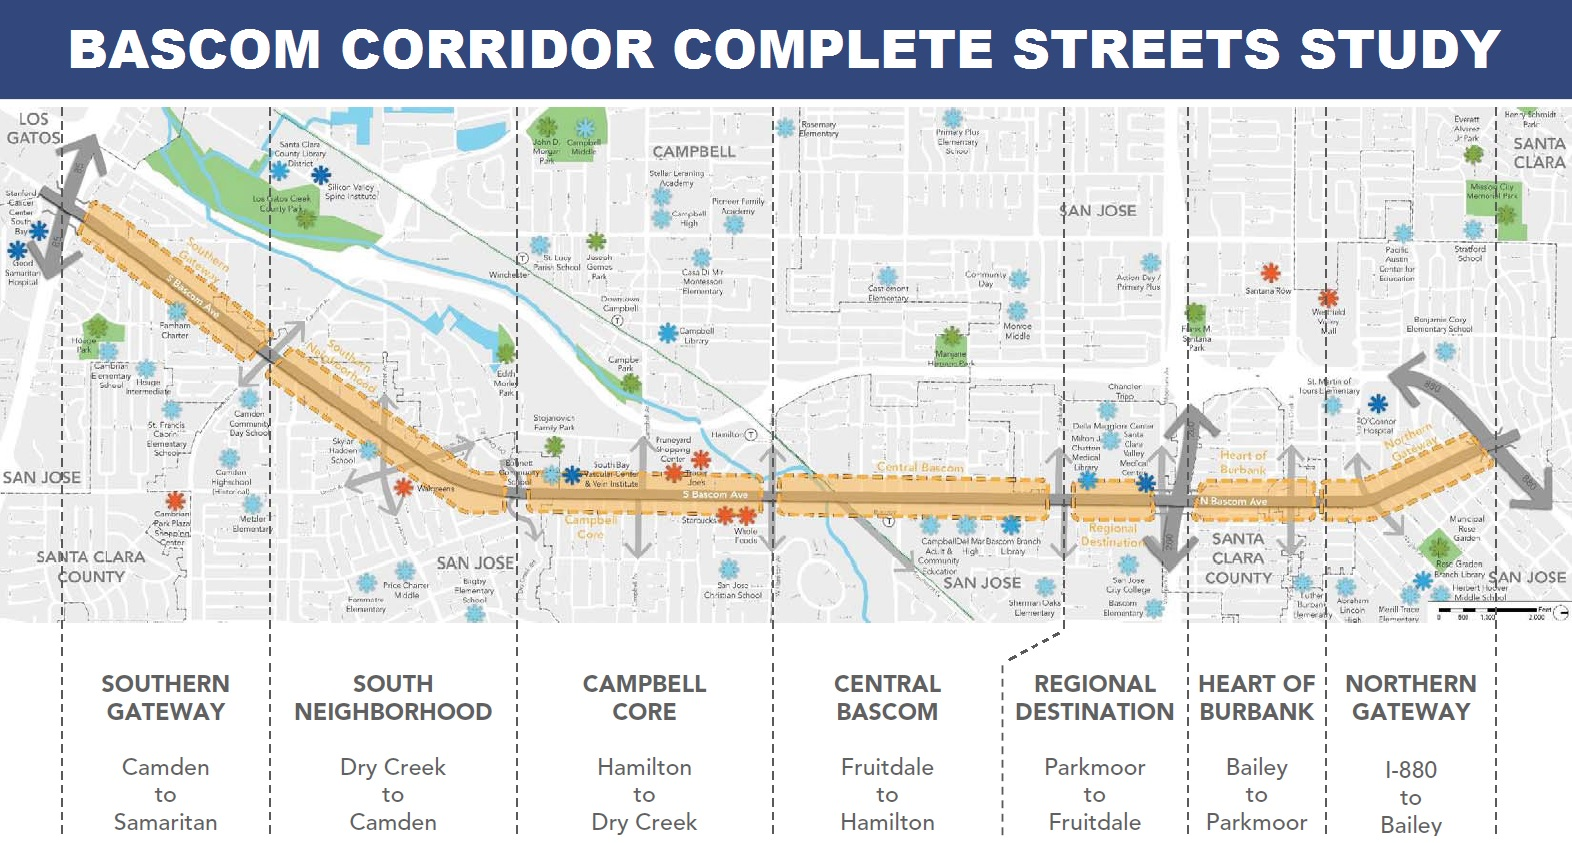 District Corridor Segments Map: Camden to Samaritan, Dry Creek to Camden, Hamilton to Dry Creek, Fruitdale to Hamilton, Parkmoor to Fruitdale, Bailey to Parkmoor, I-880 to Bailey.